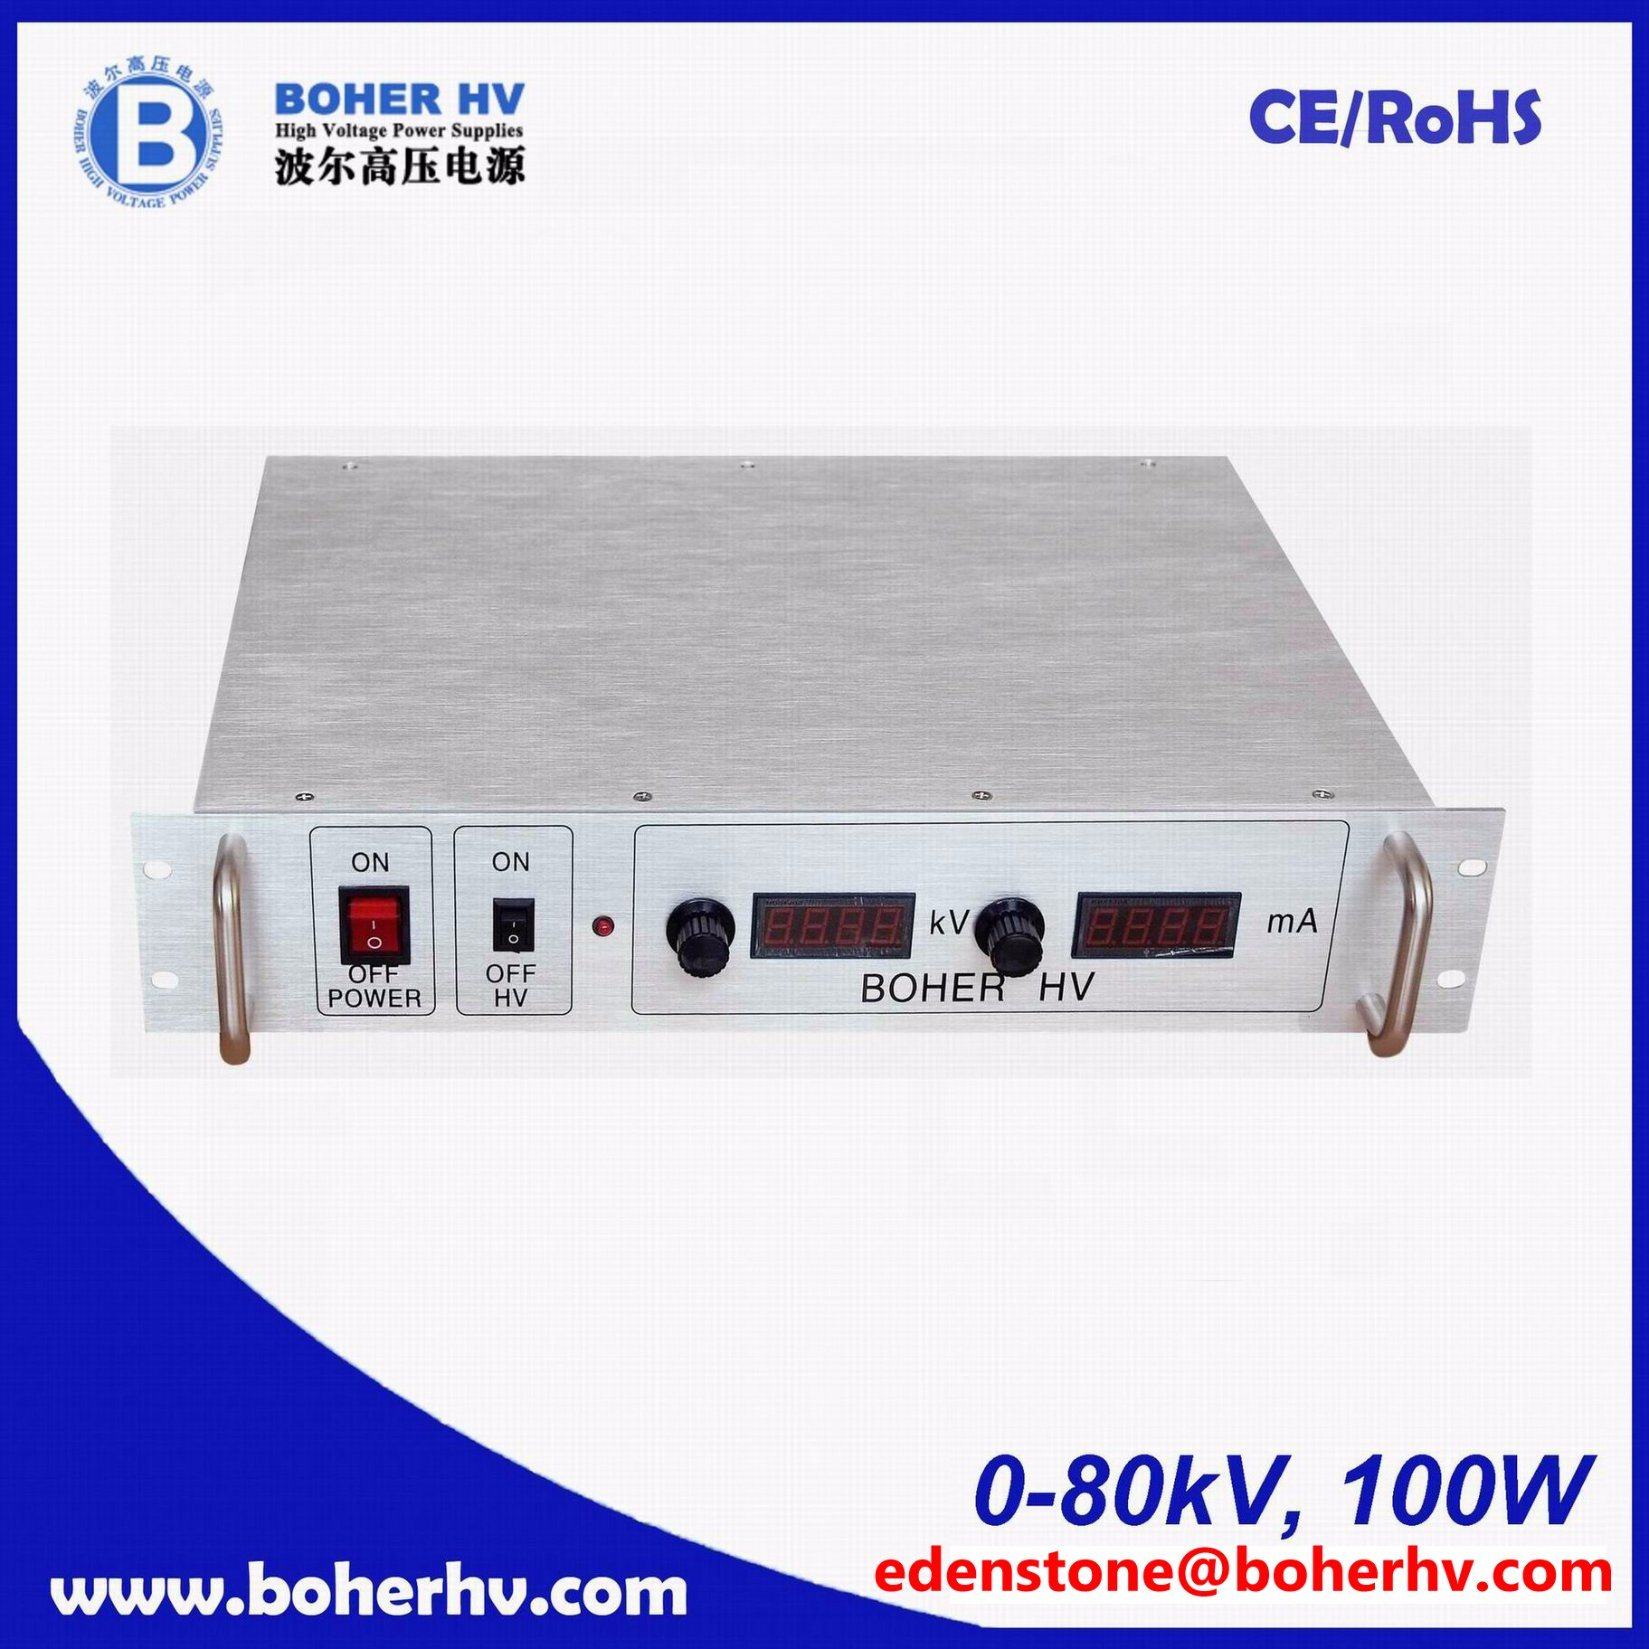 Rack power supply for general purpose 100W 80kV LAS-230VAC-P100-80K-2U